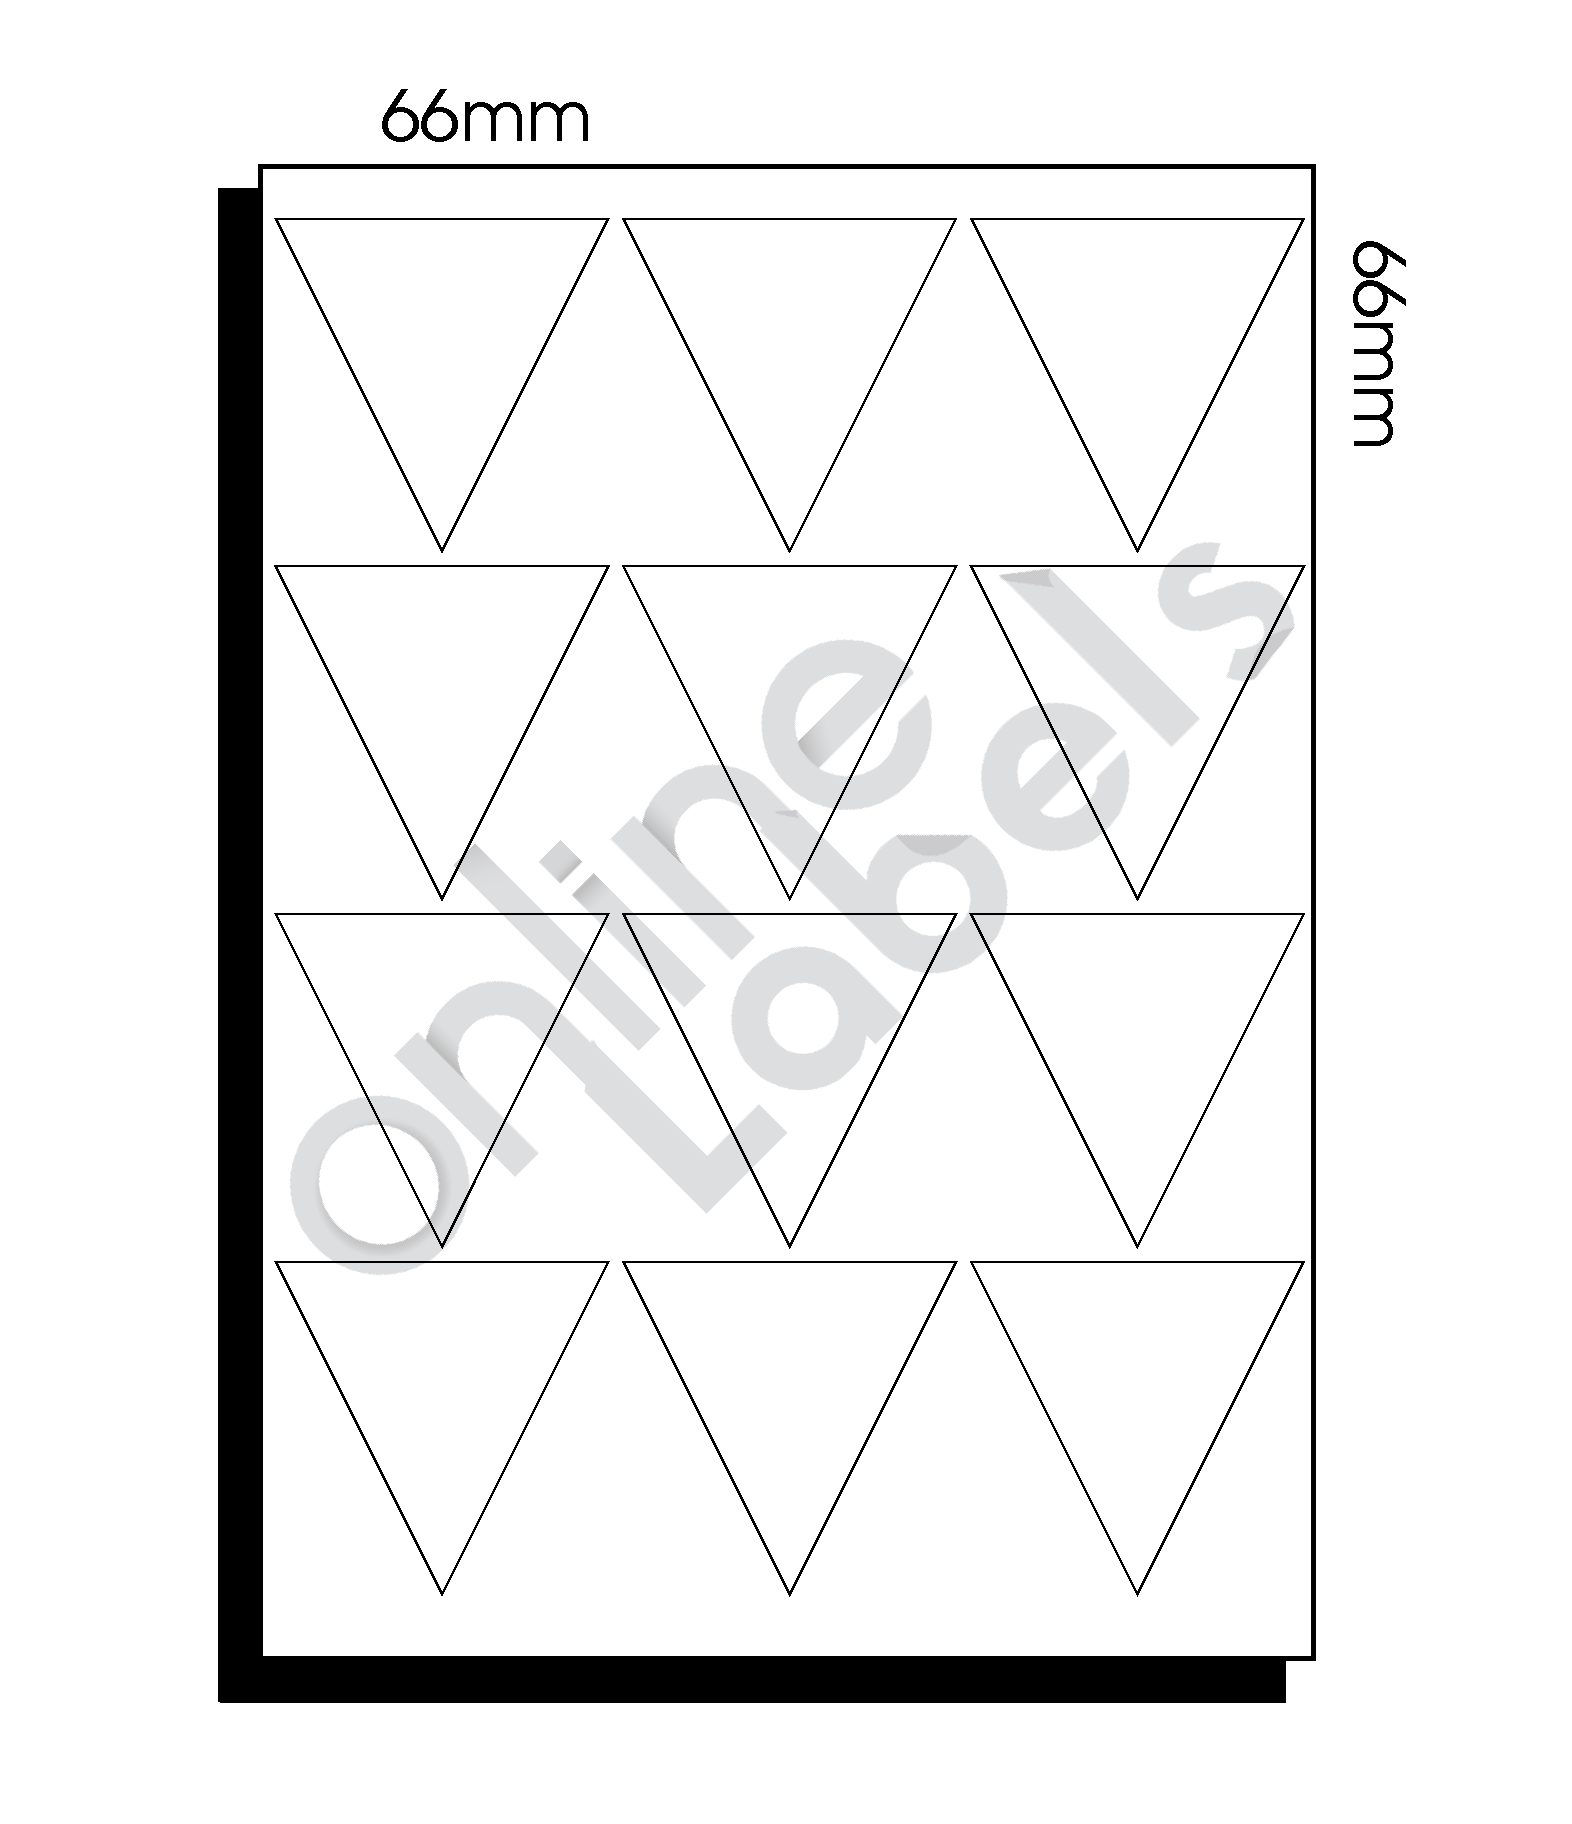 66mm x 66mm (084) – 12 Labels per Sheet